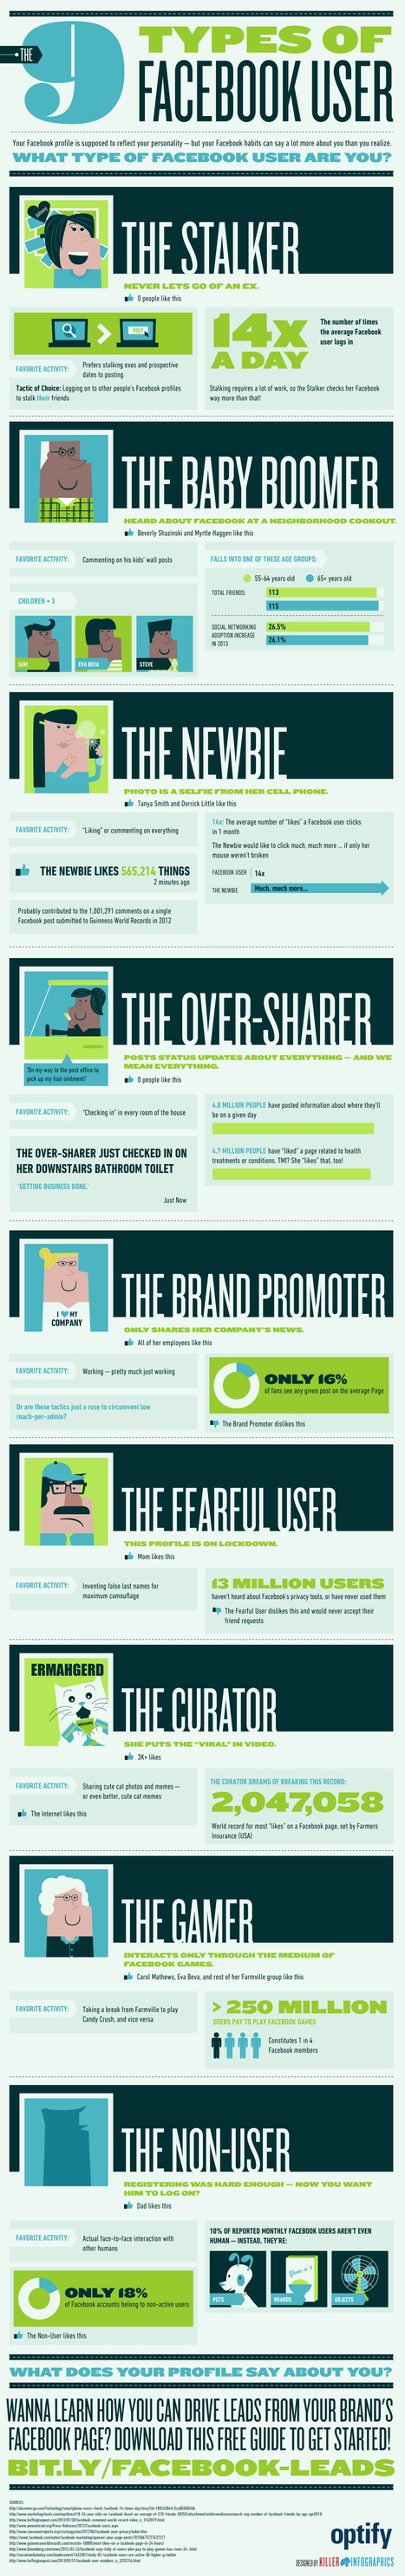 Optify | [INFOGRAPHIC]: The 9 Types of Facebook User | ten Hagen on Social Media | Scoop.it